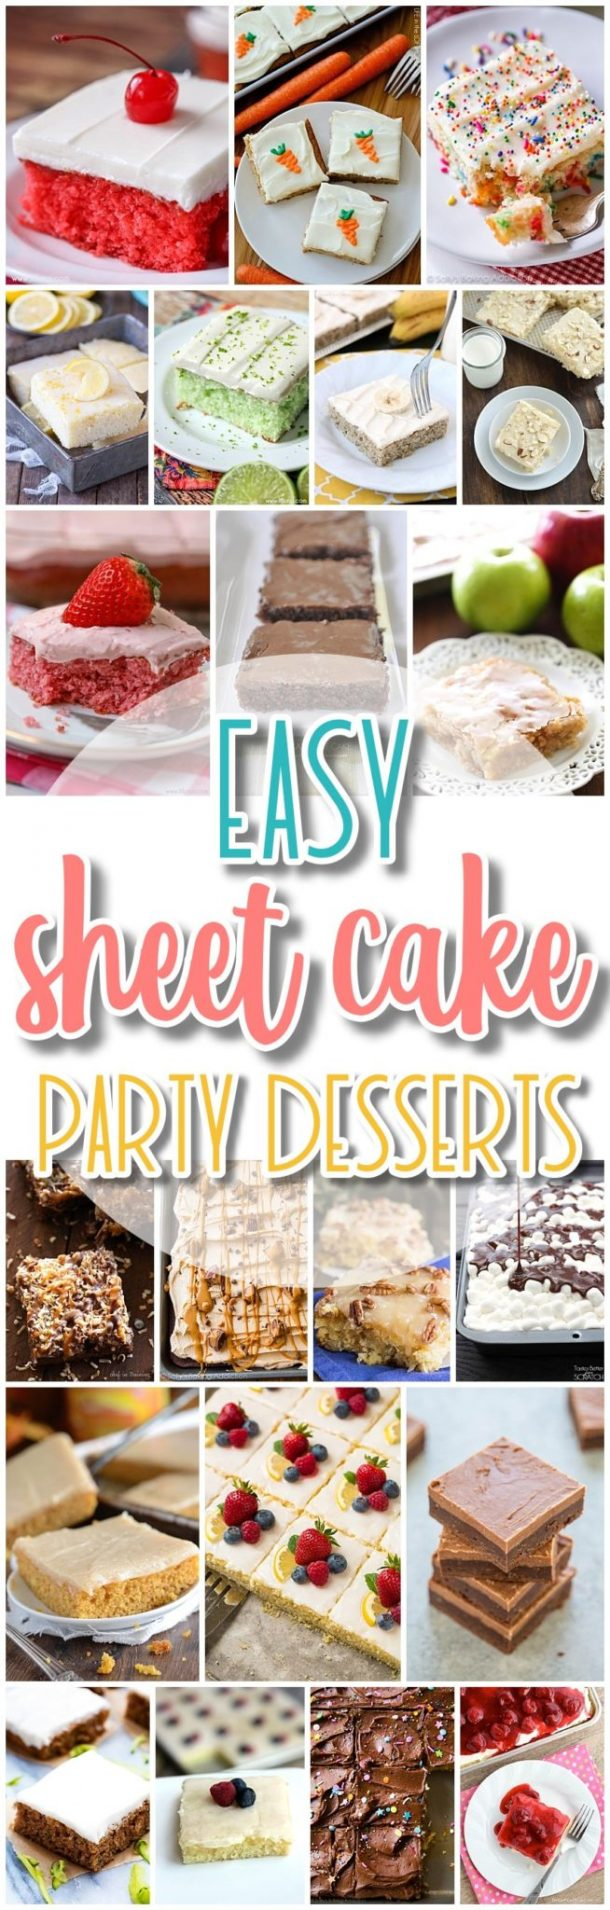 The Best EASY Sheet Cakes Recipes - Simple and Quick Party Crowds Desserts for Holidays, Special Occasions and Family Celebrations - Dreaming in DIY #sheetcakerecipes #sheetcake #sheetcakes #cakerecipes #cakes #dessertforacrowd #partydesserts #christmasdesserts #thanksgivingdesserts #newyearseve #birthdaydesserts